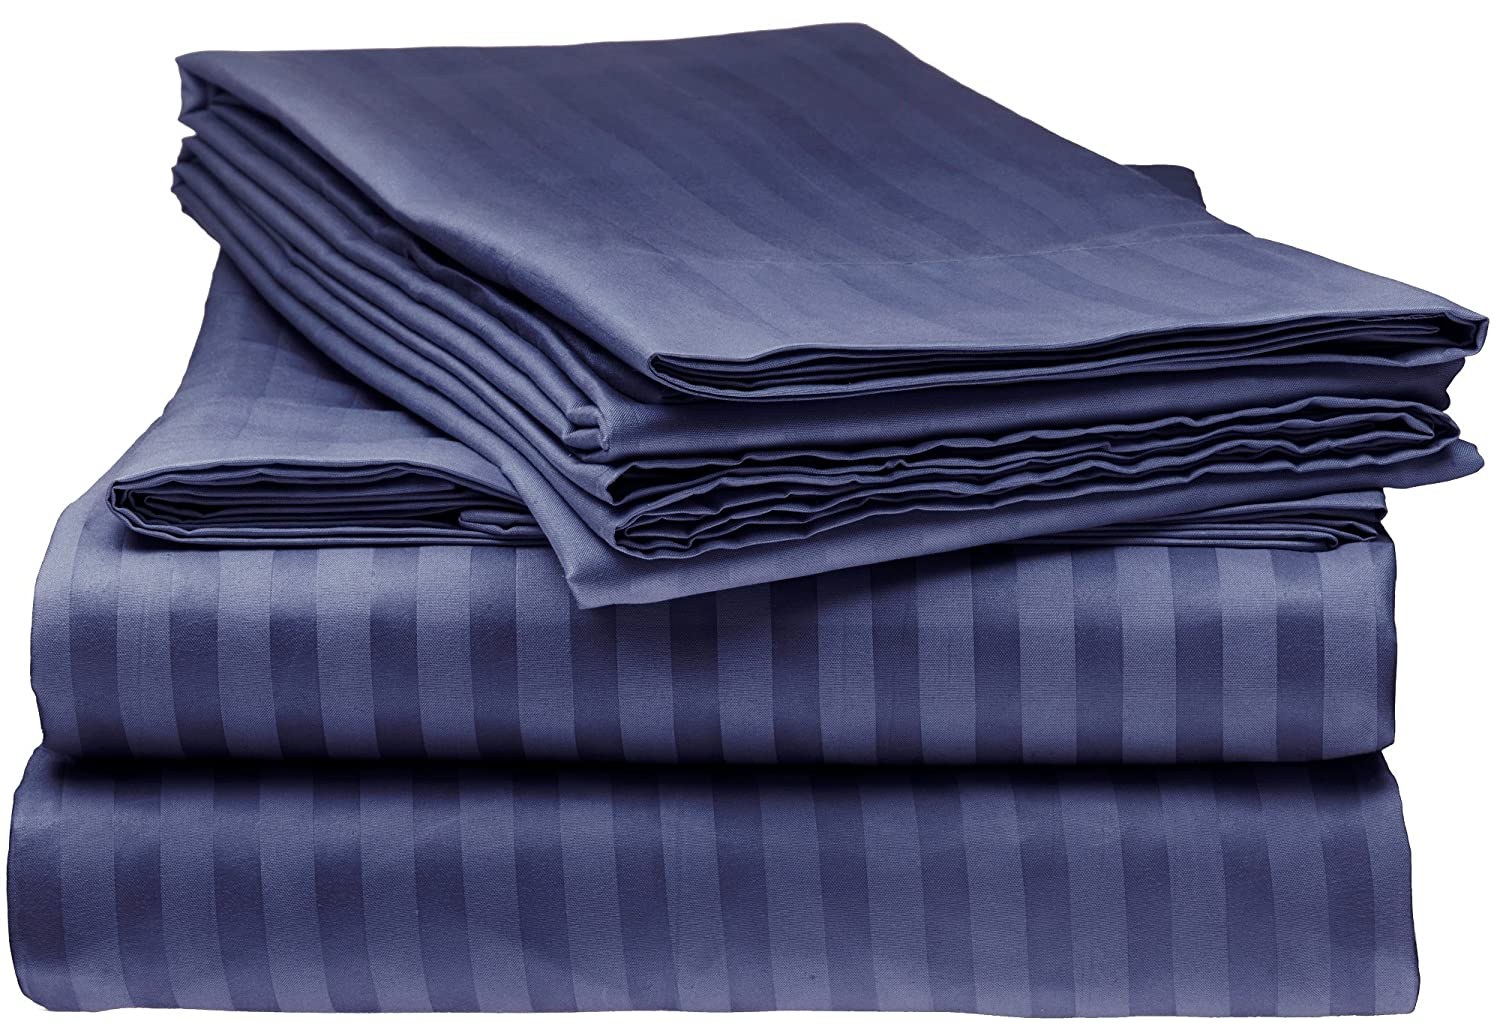 Bella kline Bedding 1800 Series 4 pc Bed Sheet Set with Pillowcases Hypoallergenic, 1 Soft Silky Luxurious Feel, Fitted and Flat Sheets Lifetime - Full Size, Navy Blue